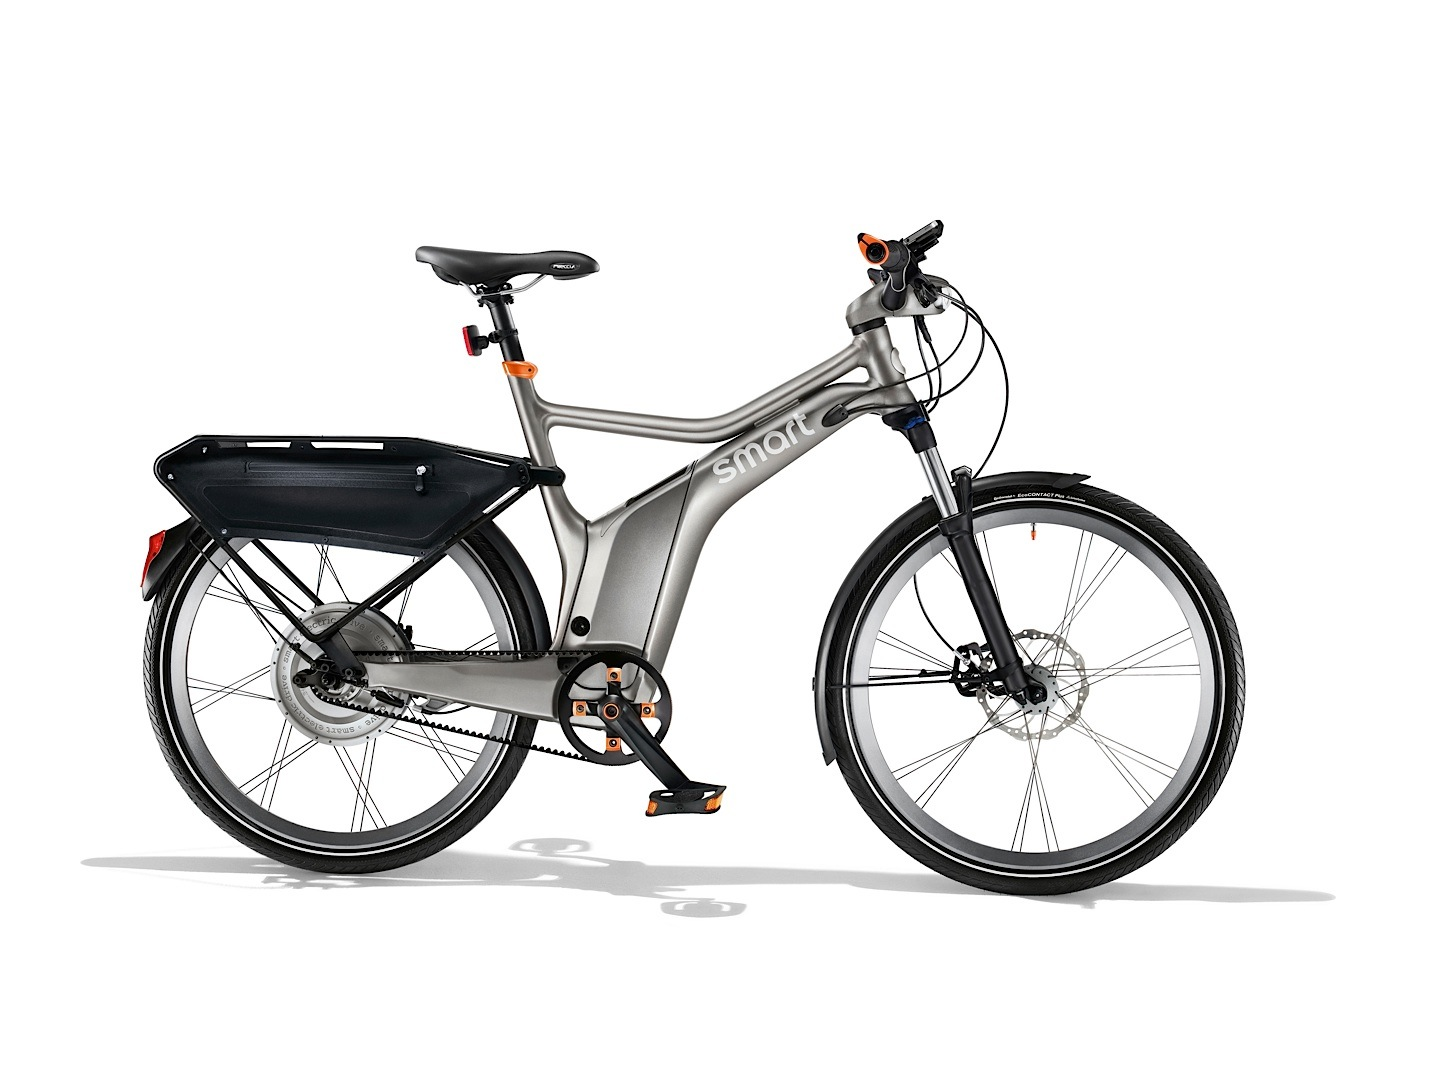 The Smart Ebike Gets New Accessories At Frankfurt